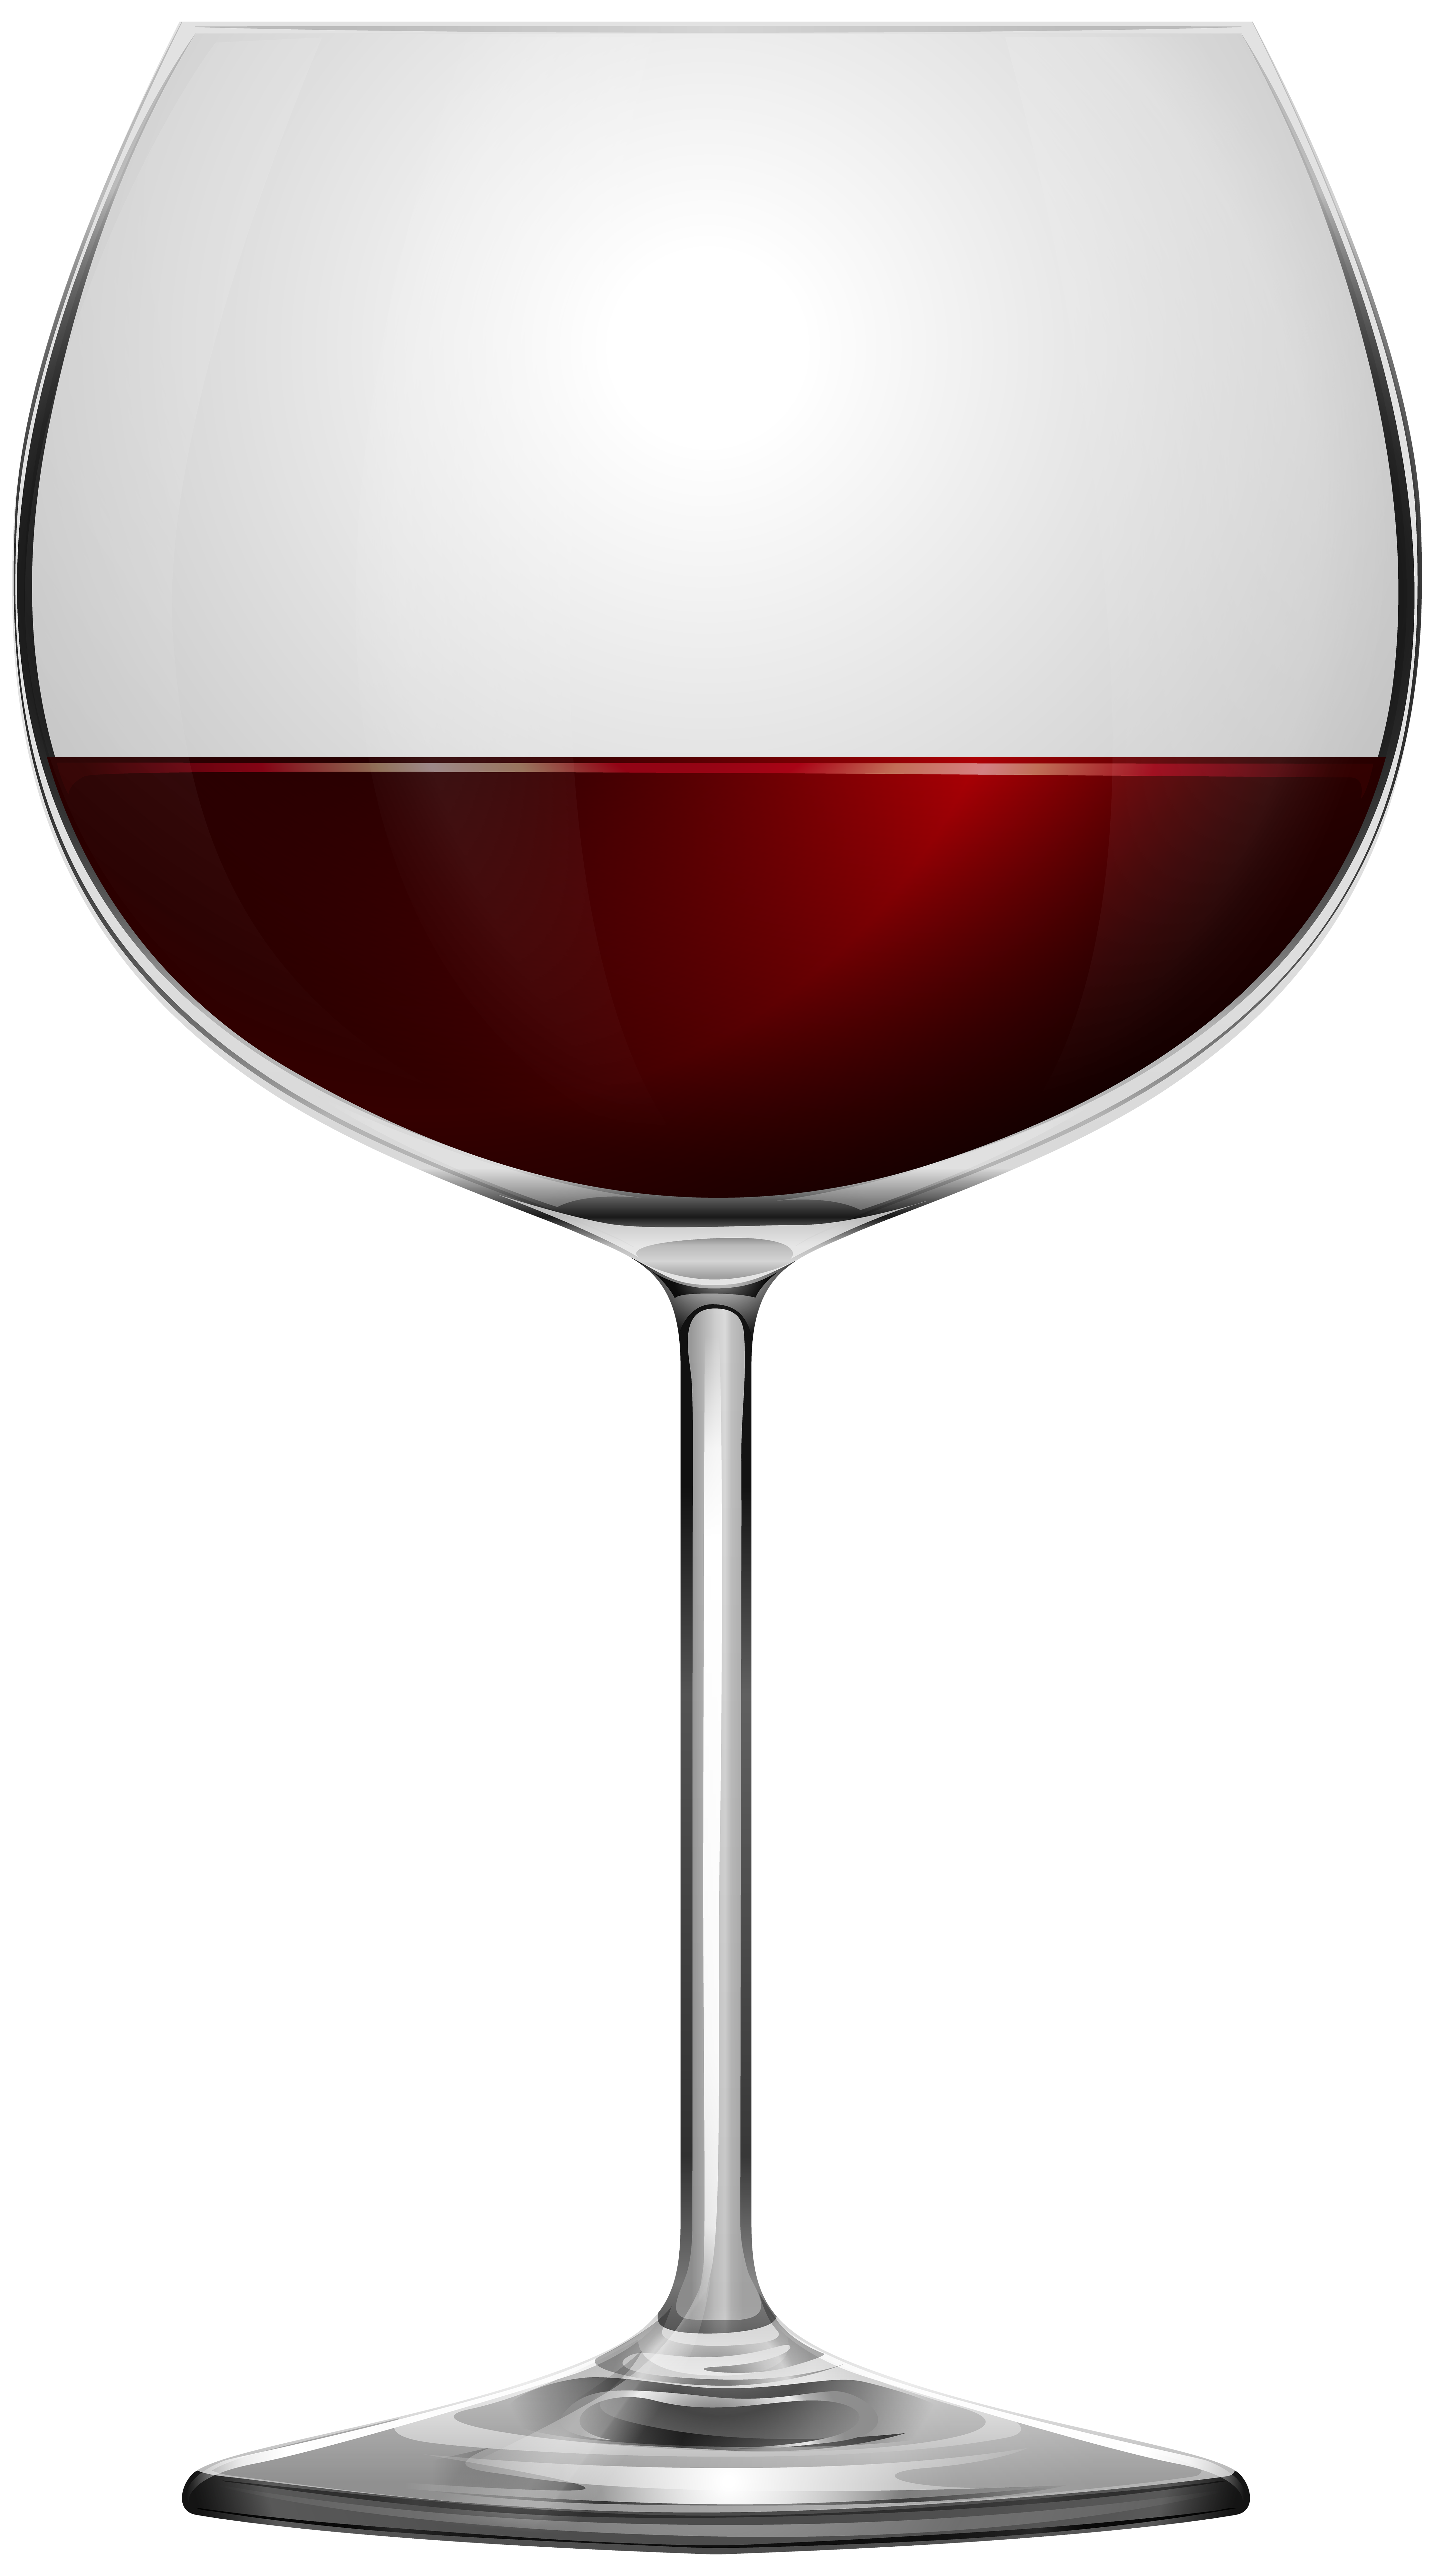 Red Wine Glass Transparent PNG Image.